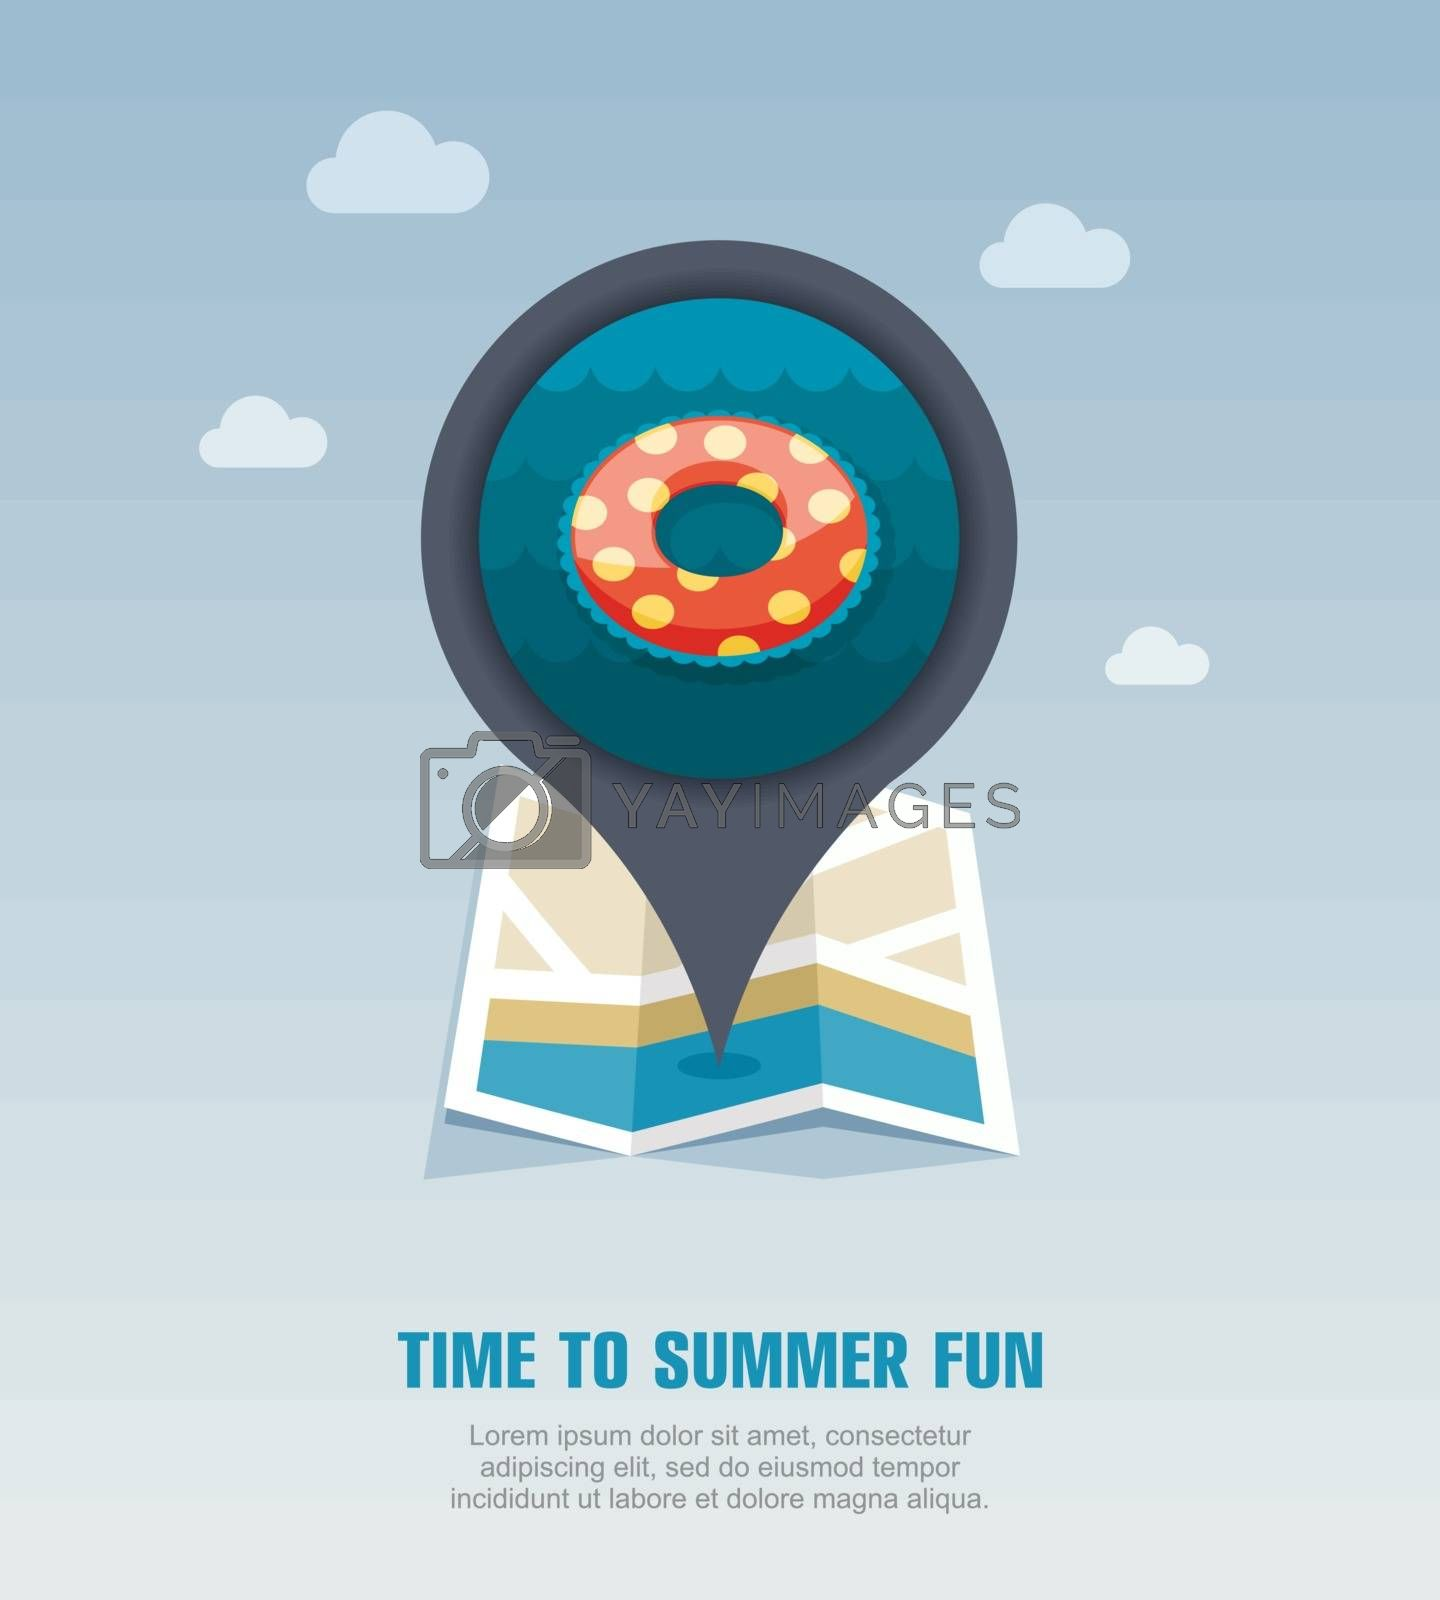 Swimming circle on water pin map icon. Vacation by nosik